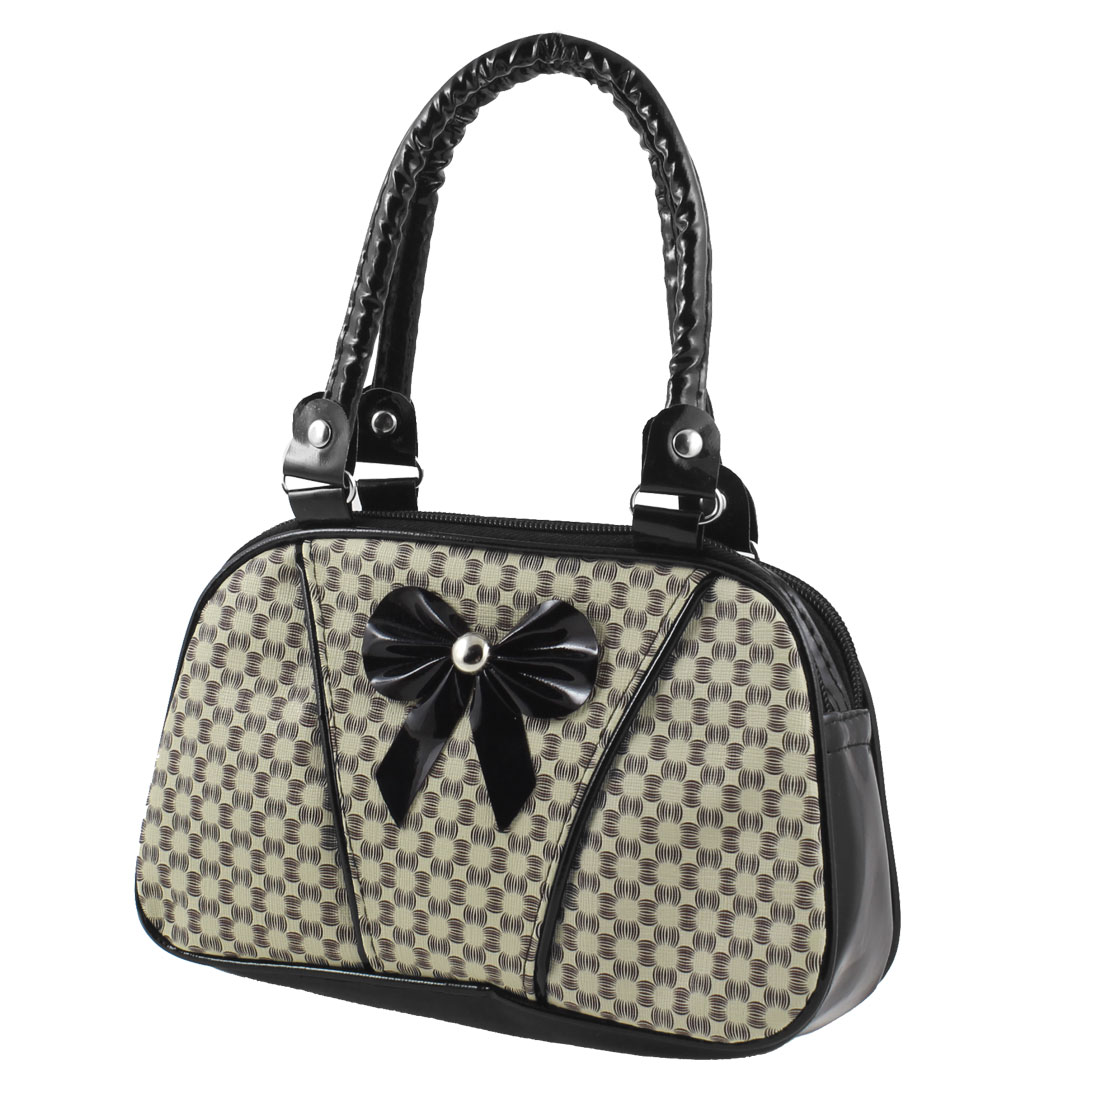 Lady Bowknot Decor 2 Compartment Double Strap Zipper Closure Handbag Change Purse Black Beige